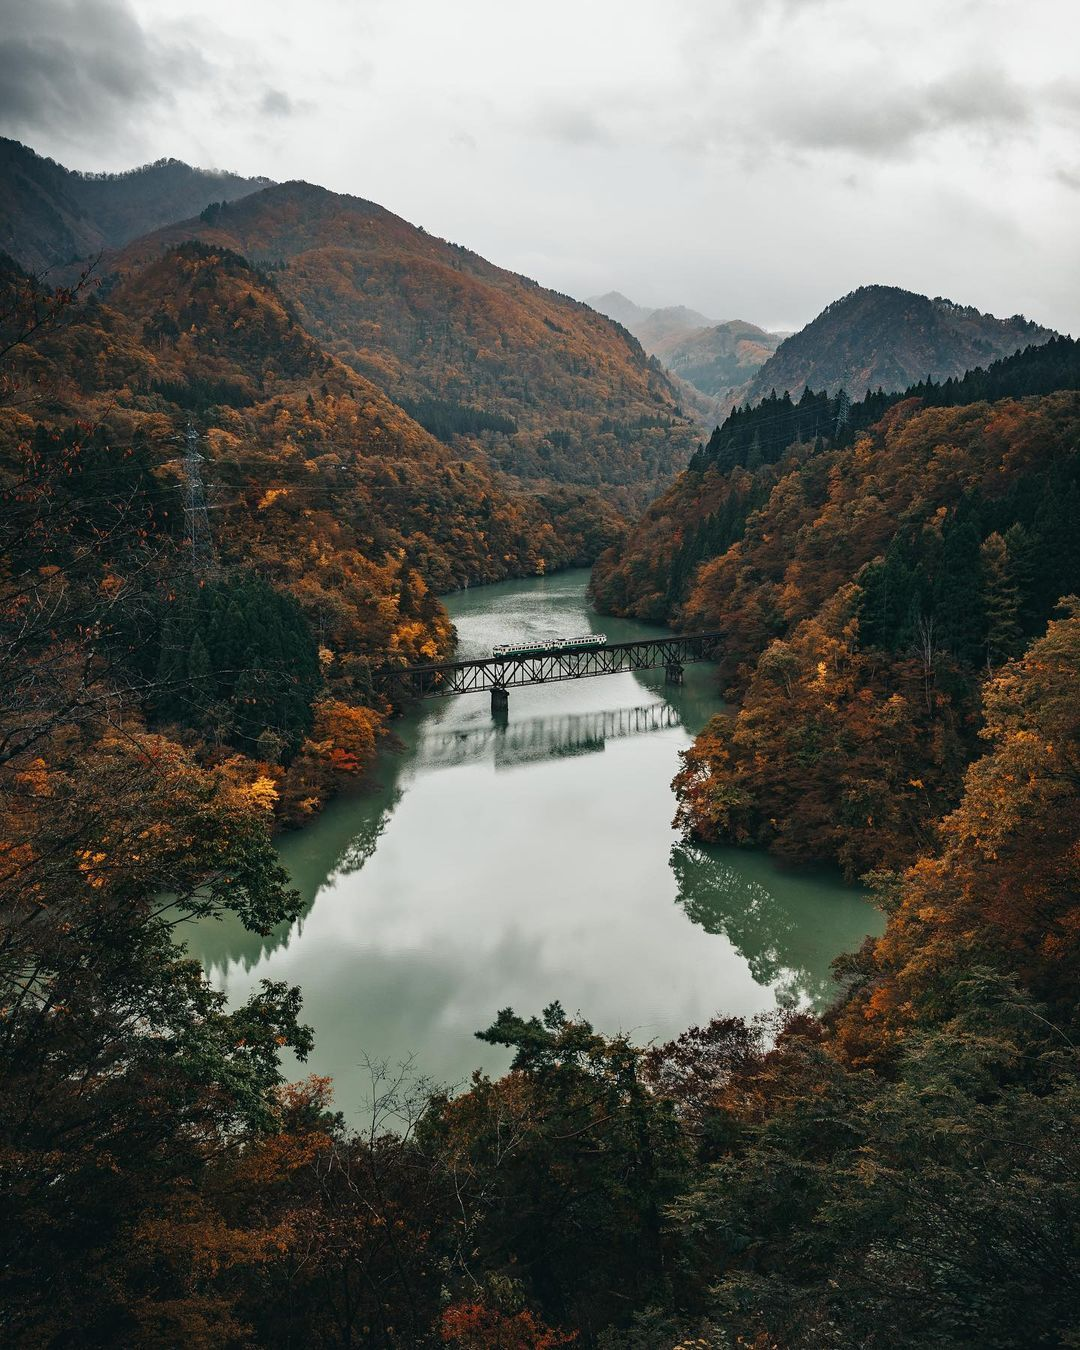 "Yusuke Kubota on Instagram: ""Autumn season in Fukushima🚃🍁 . . . . . . . #way2ill #visualambassadors #AGameoftones #artofvisuals #shotzdelight #tokyocameraclub…"""